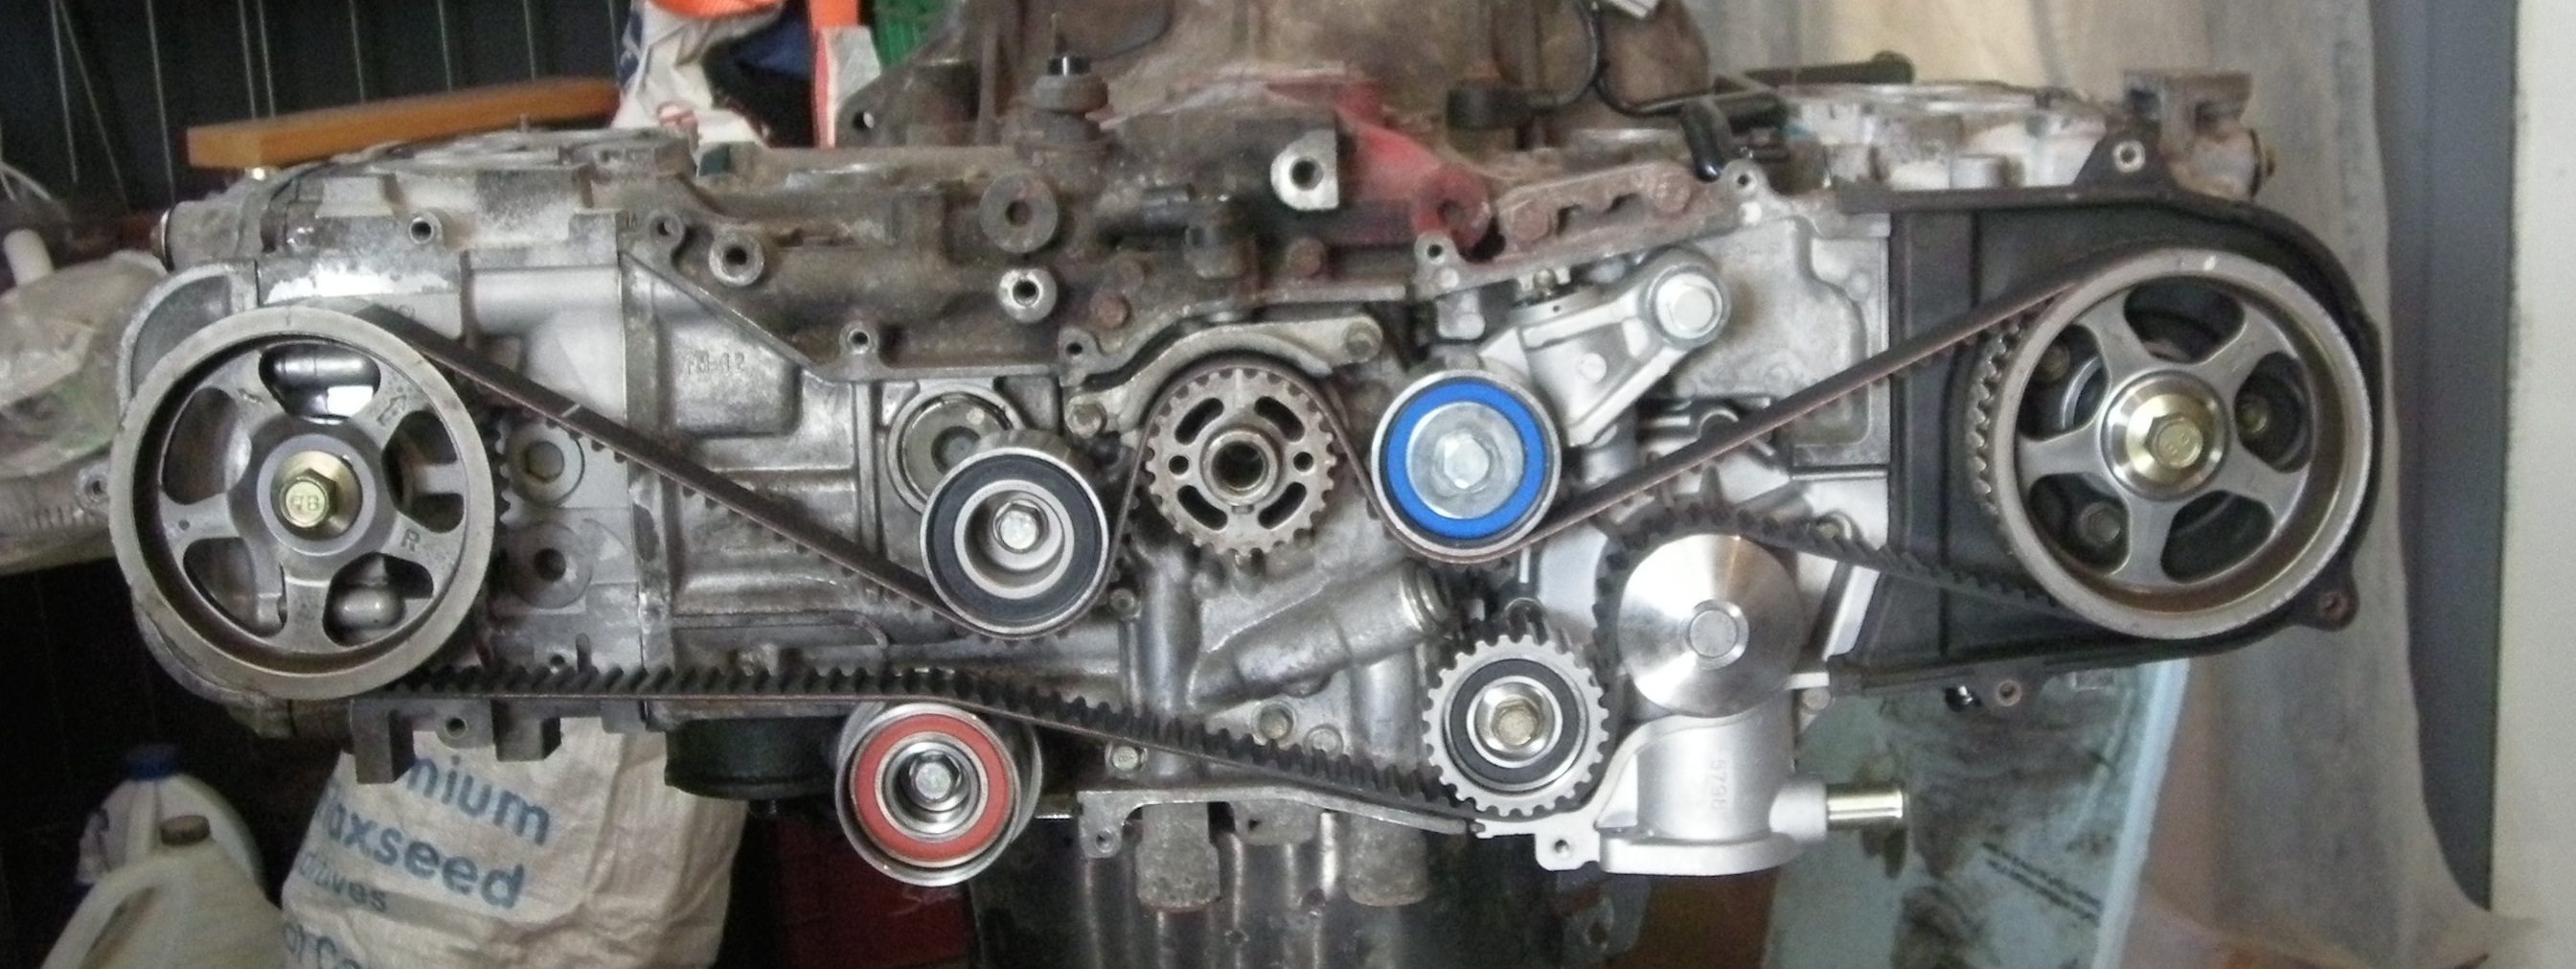 hight resolution of subaru forester timing belt diagram besides 2006 subaru legacy engine wiring diagram host